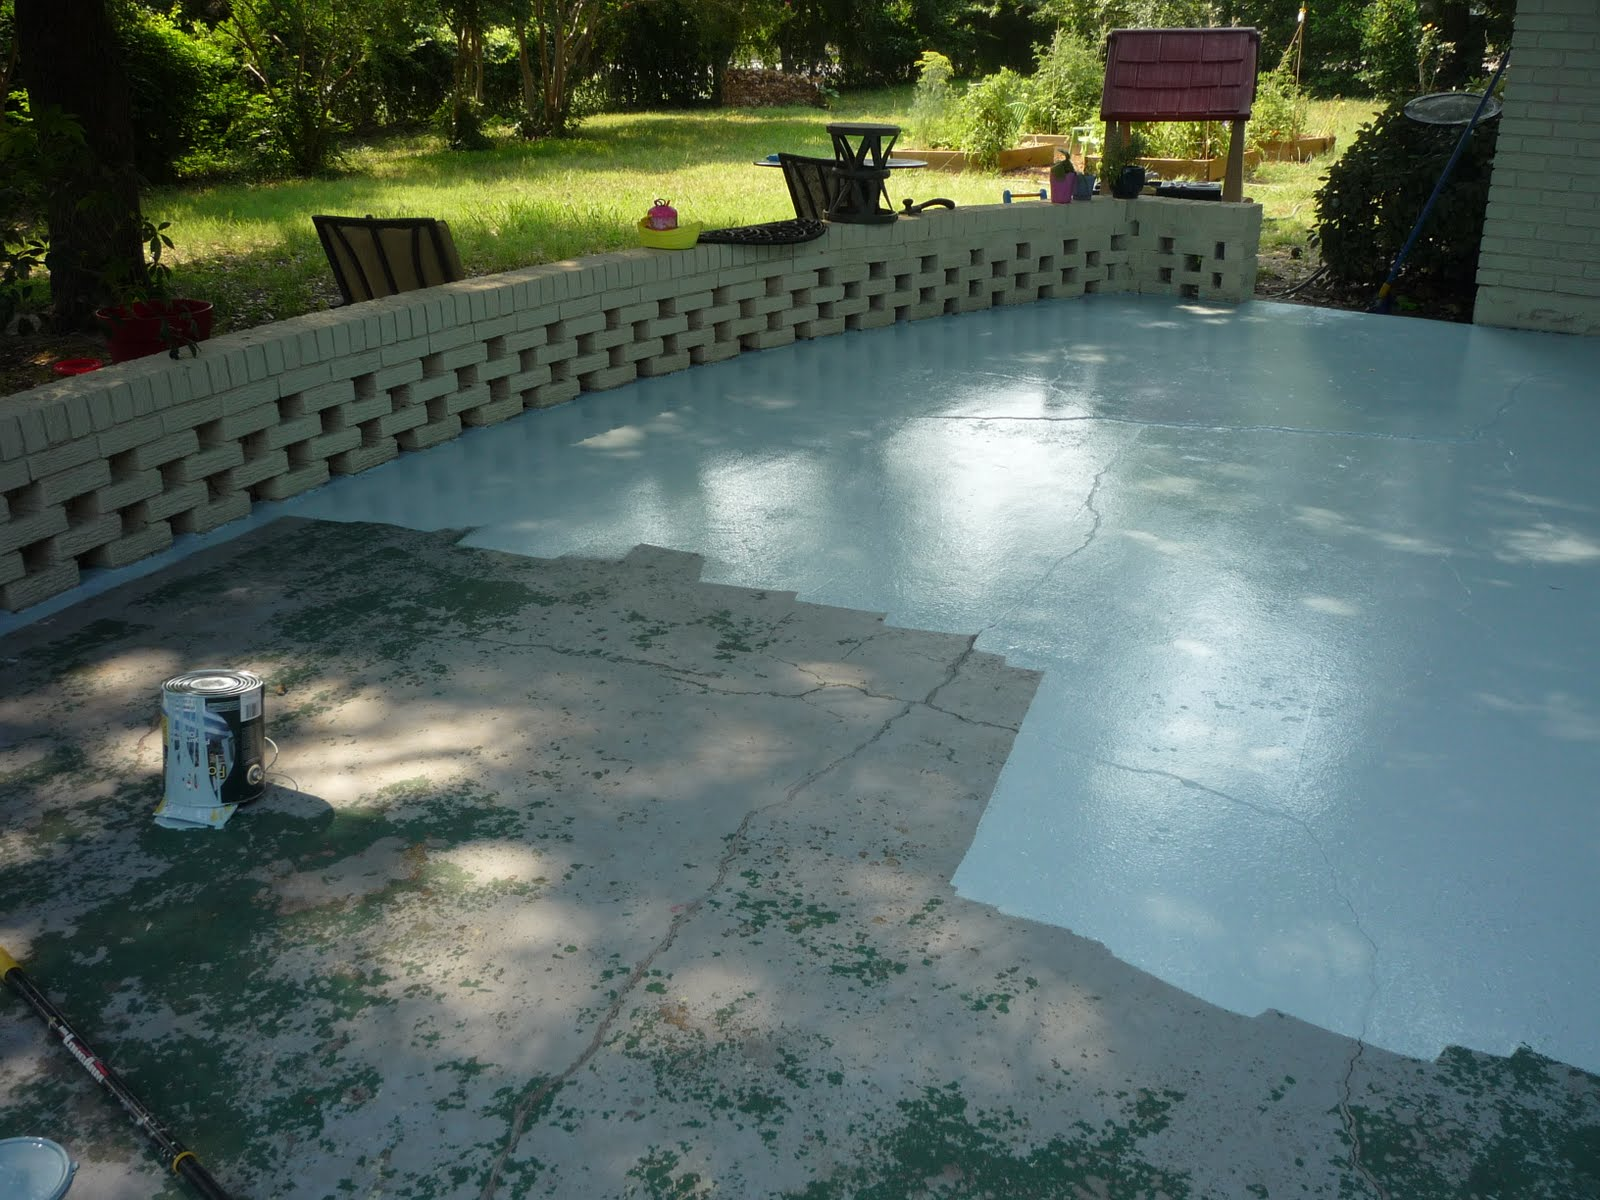 Blue Sky Pie Our Concrete Patio from filthy to tolerable for